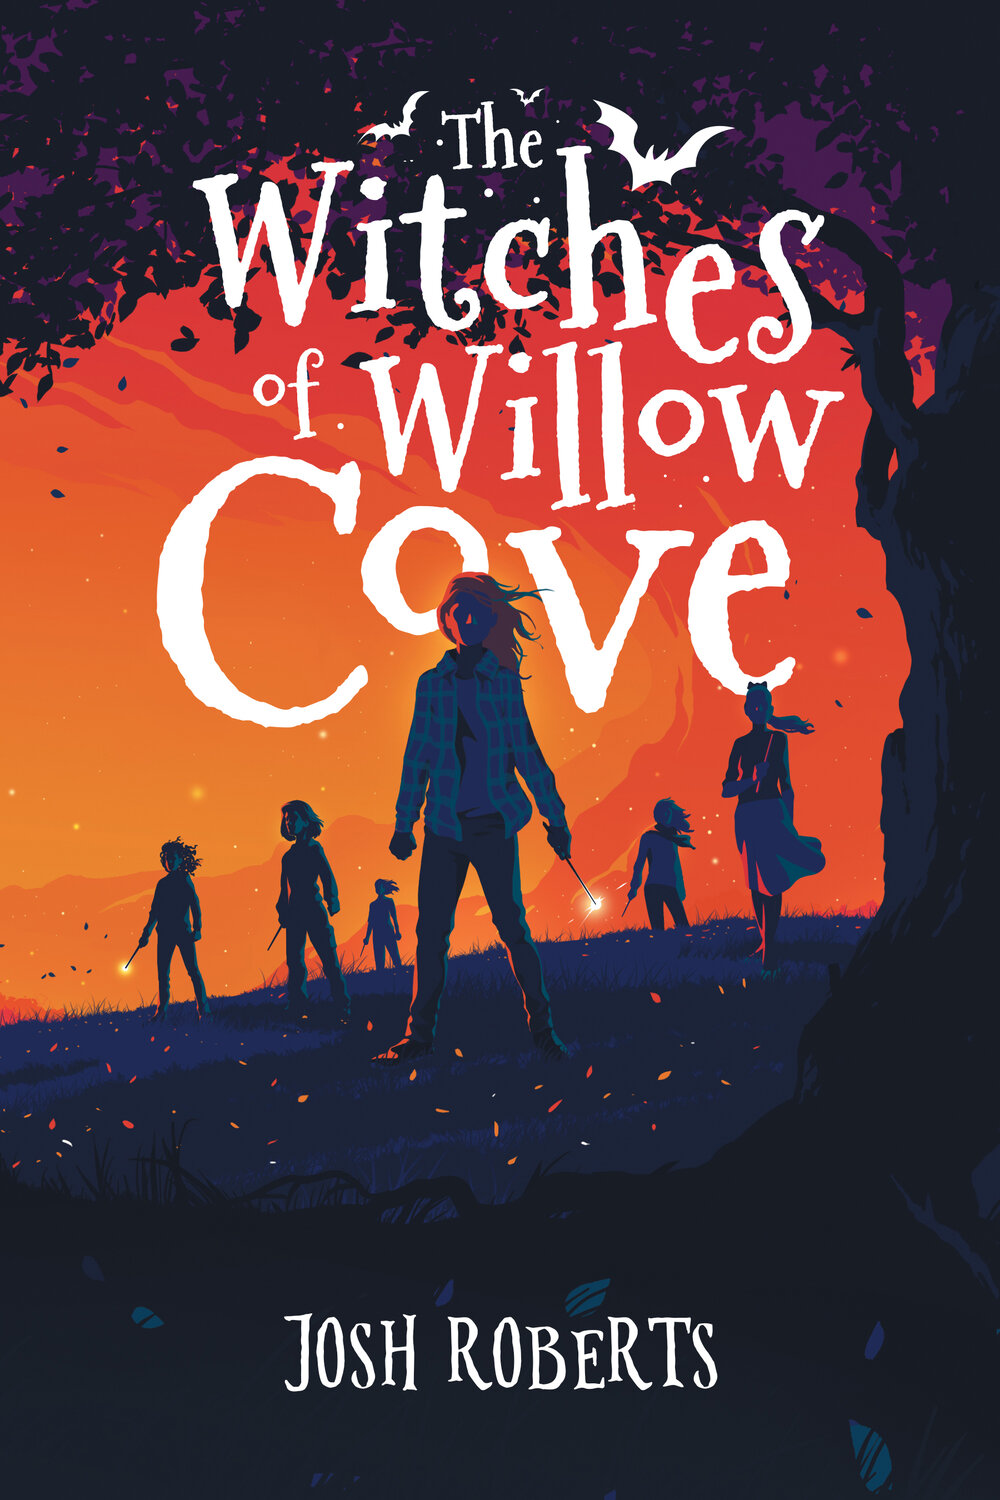 The Witches of Willow Cove by Josh Roberts | Book Review